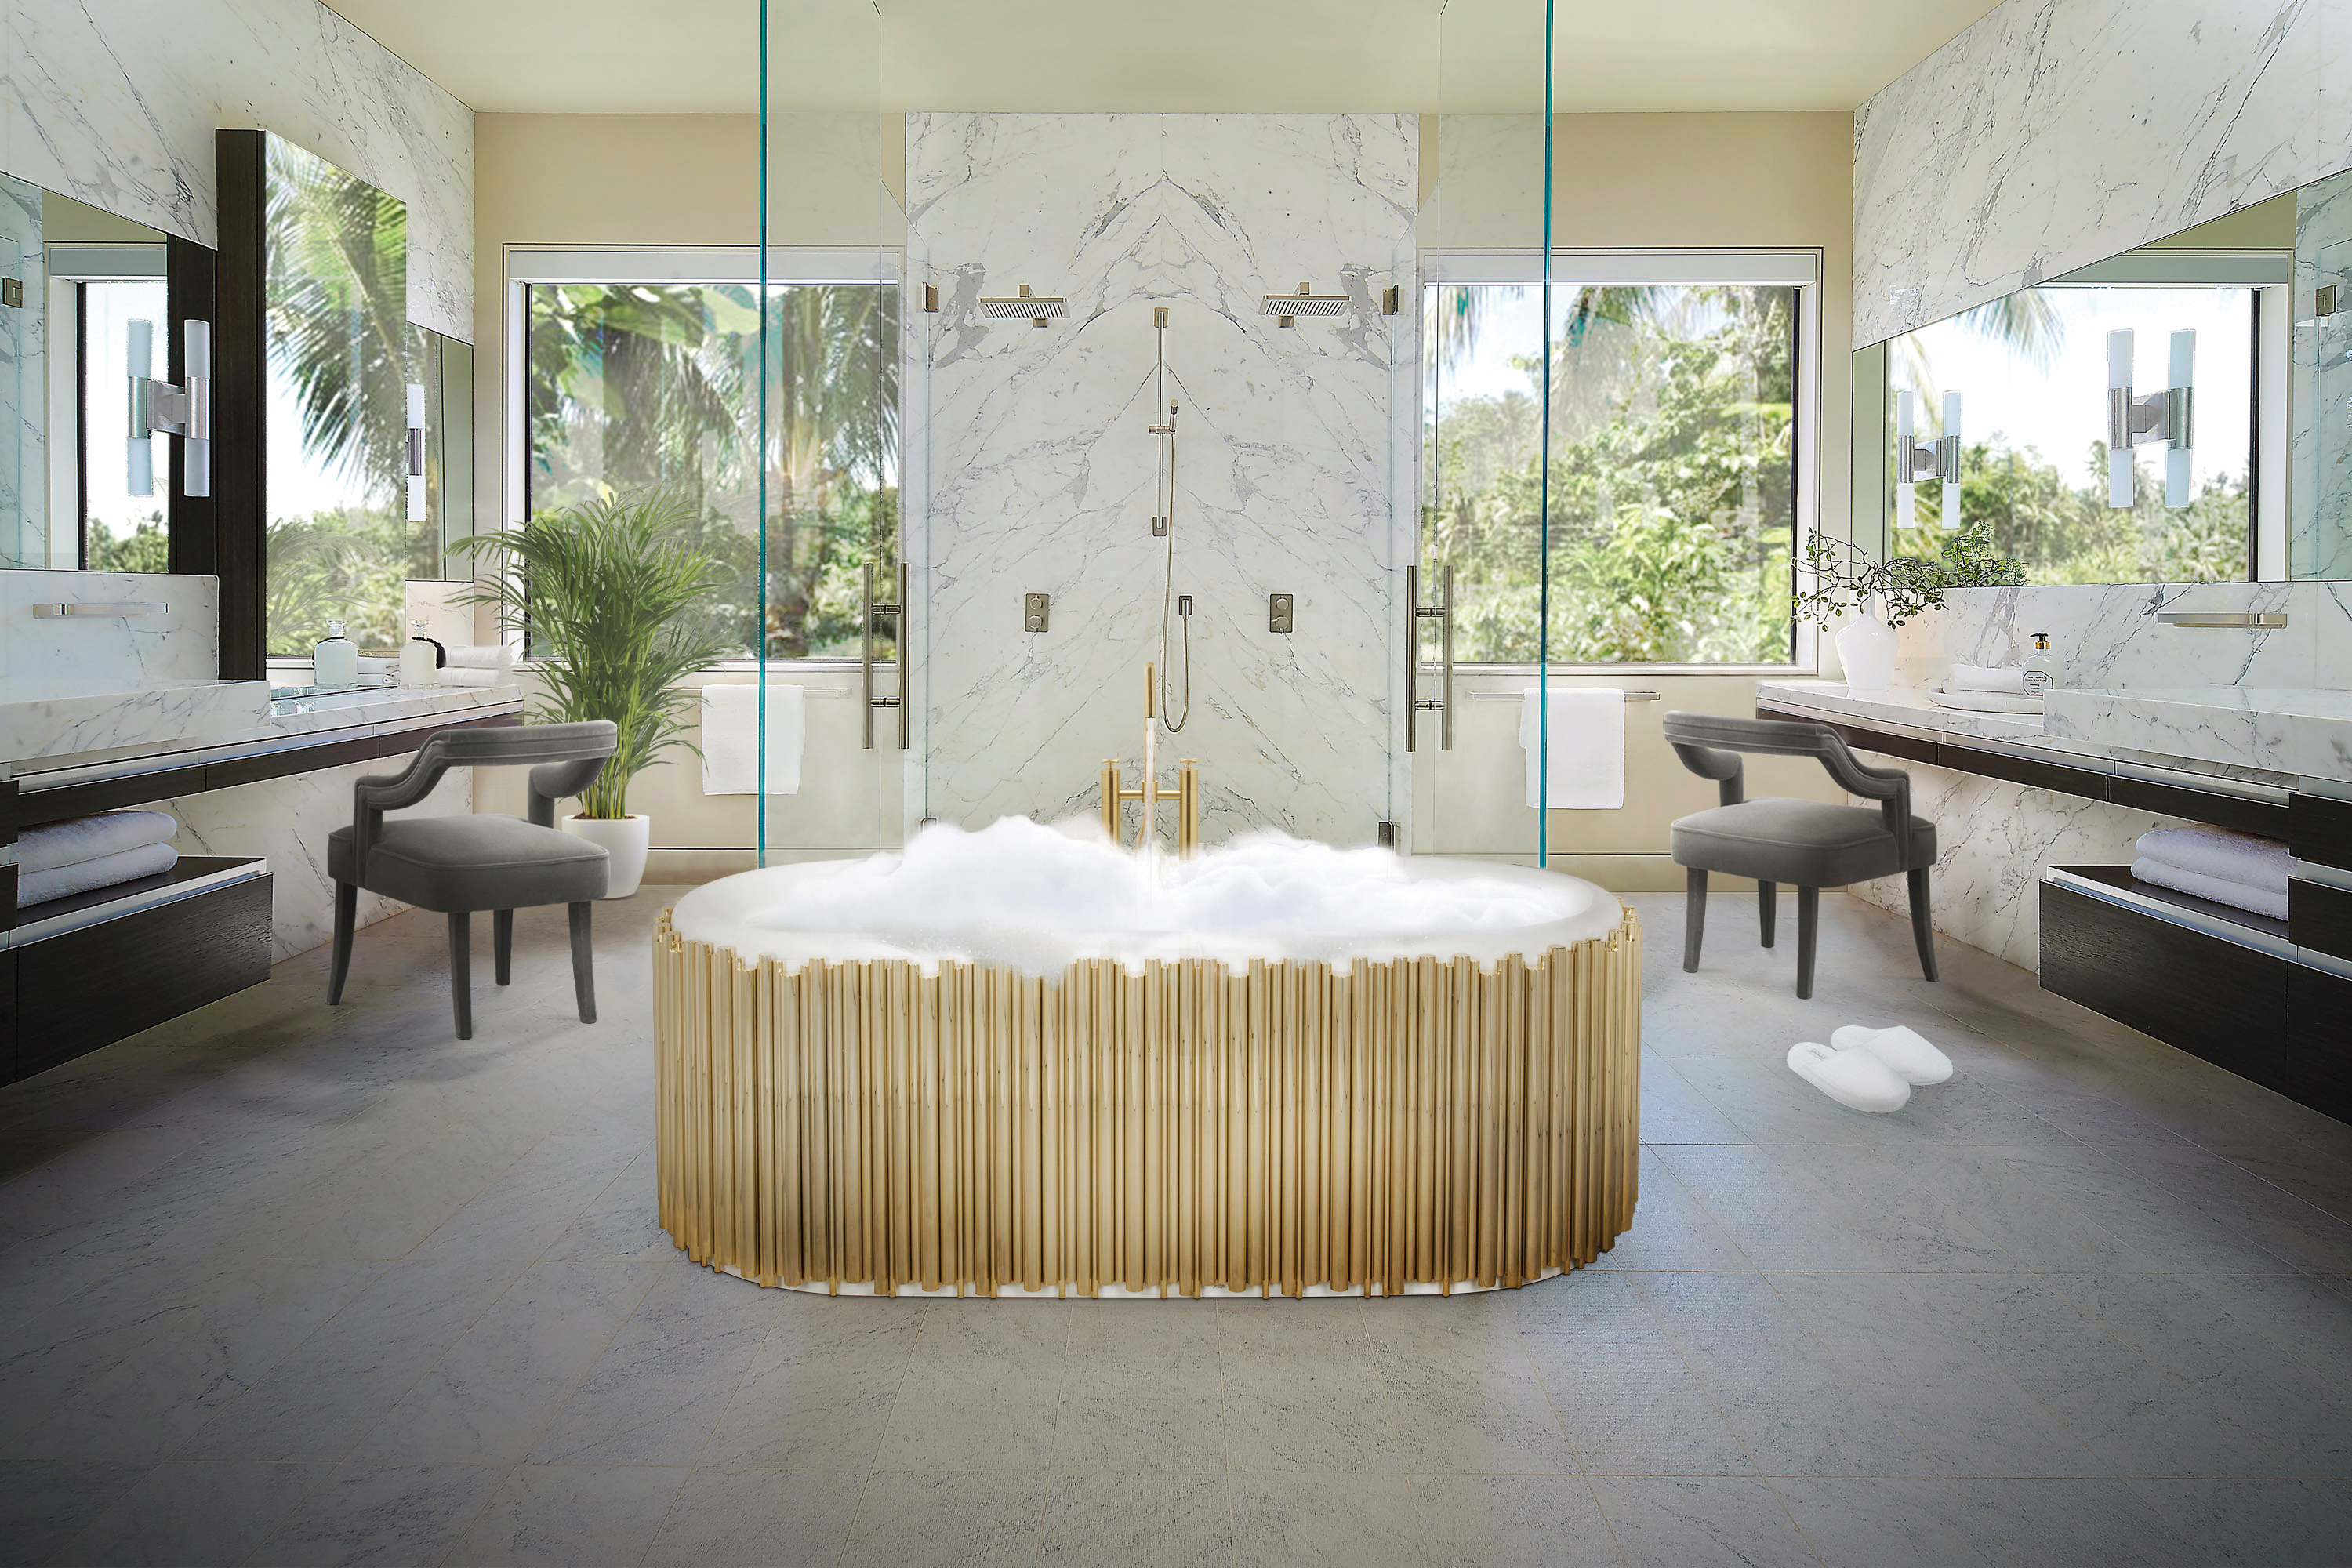 The Best Maison Valentina Products for a Luxurious Bathroom Feeling luxurious bathroom feeling The Best Maison Valentina Products for a Luxurious Bathroom Feeling 116 1